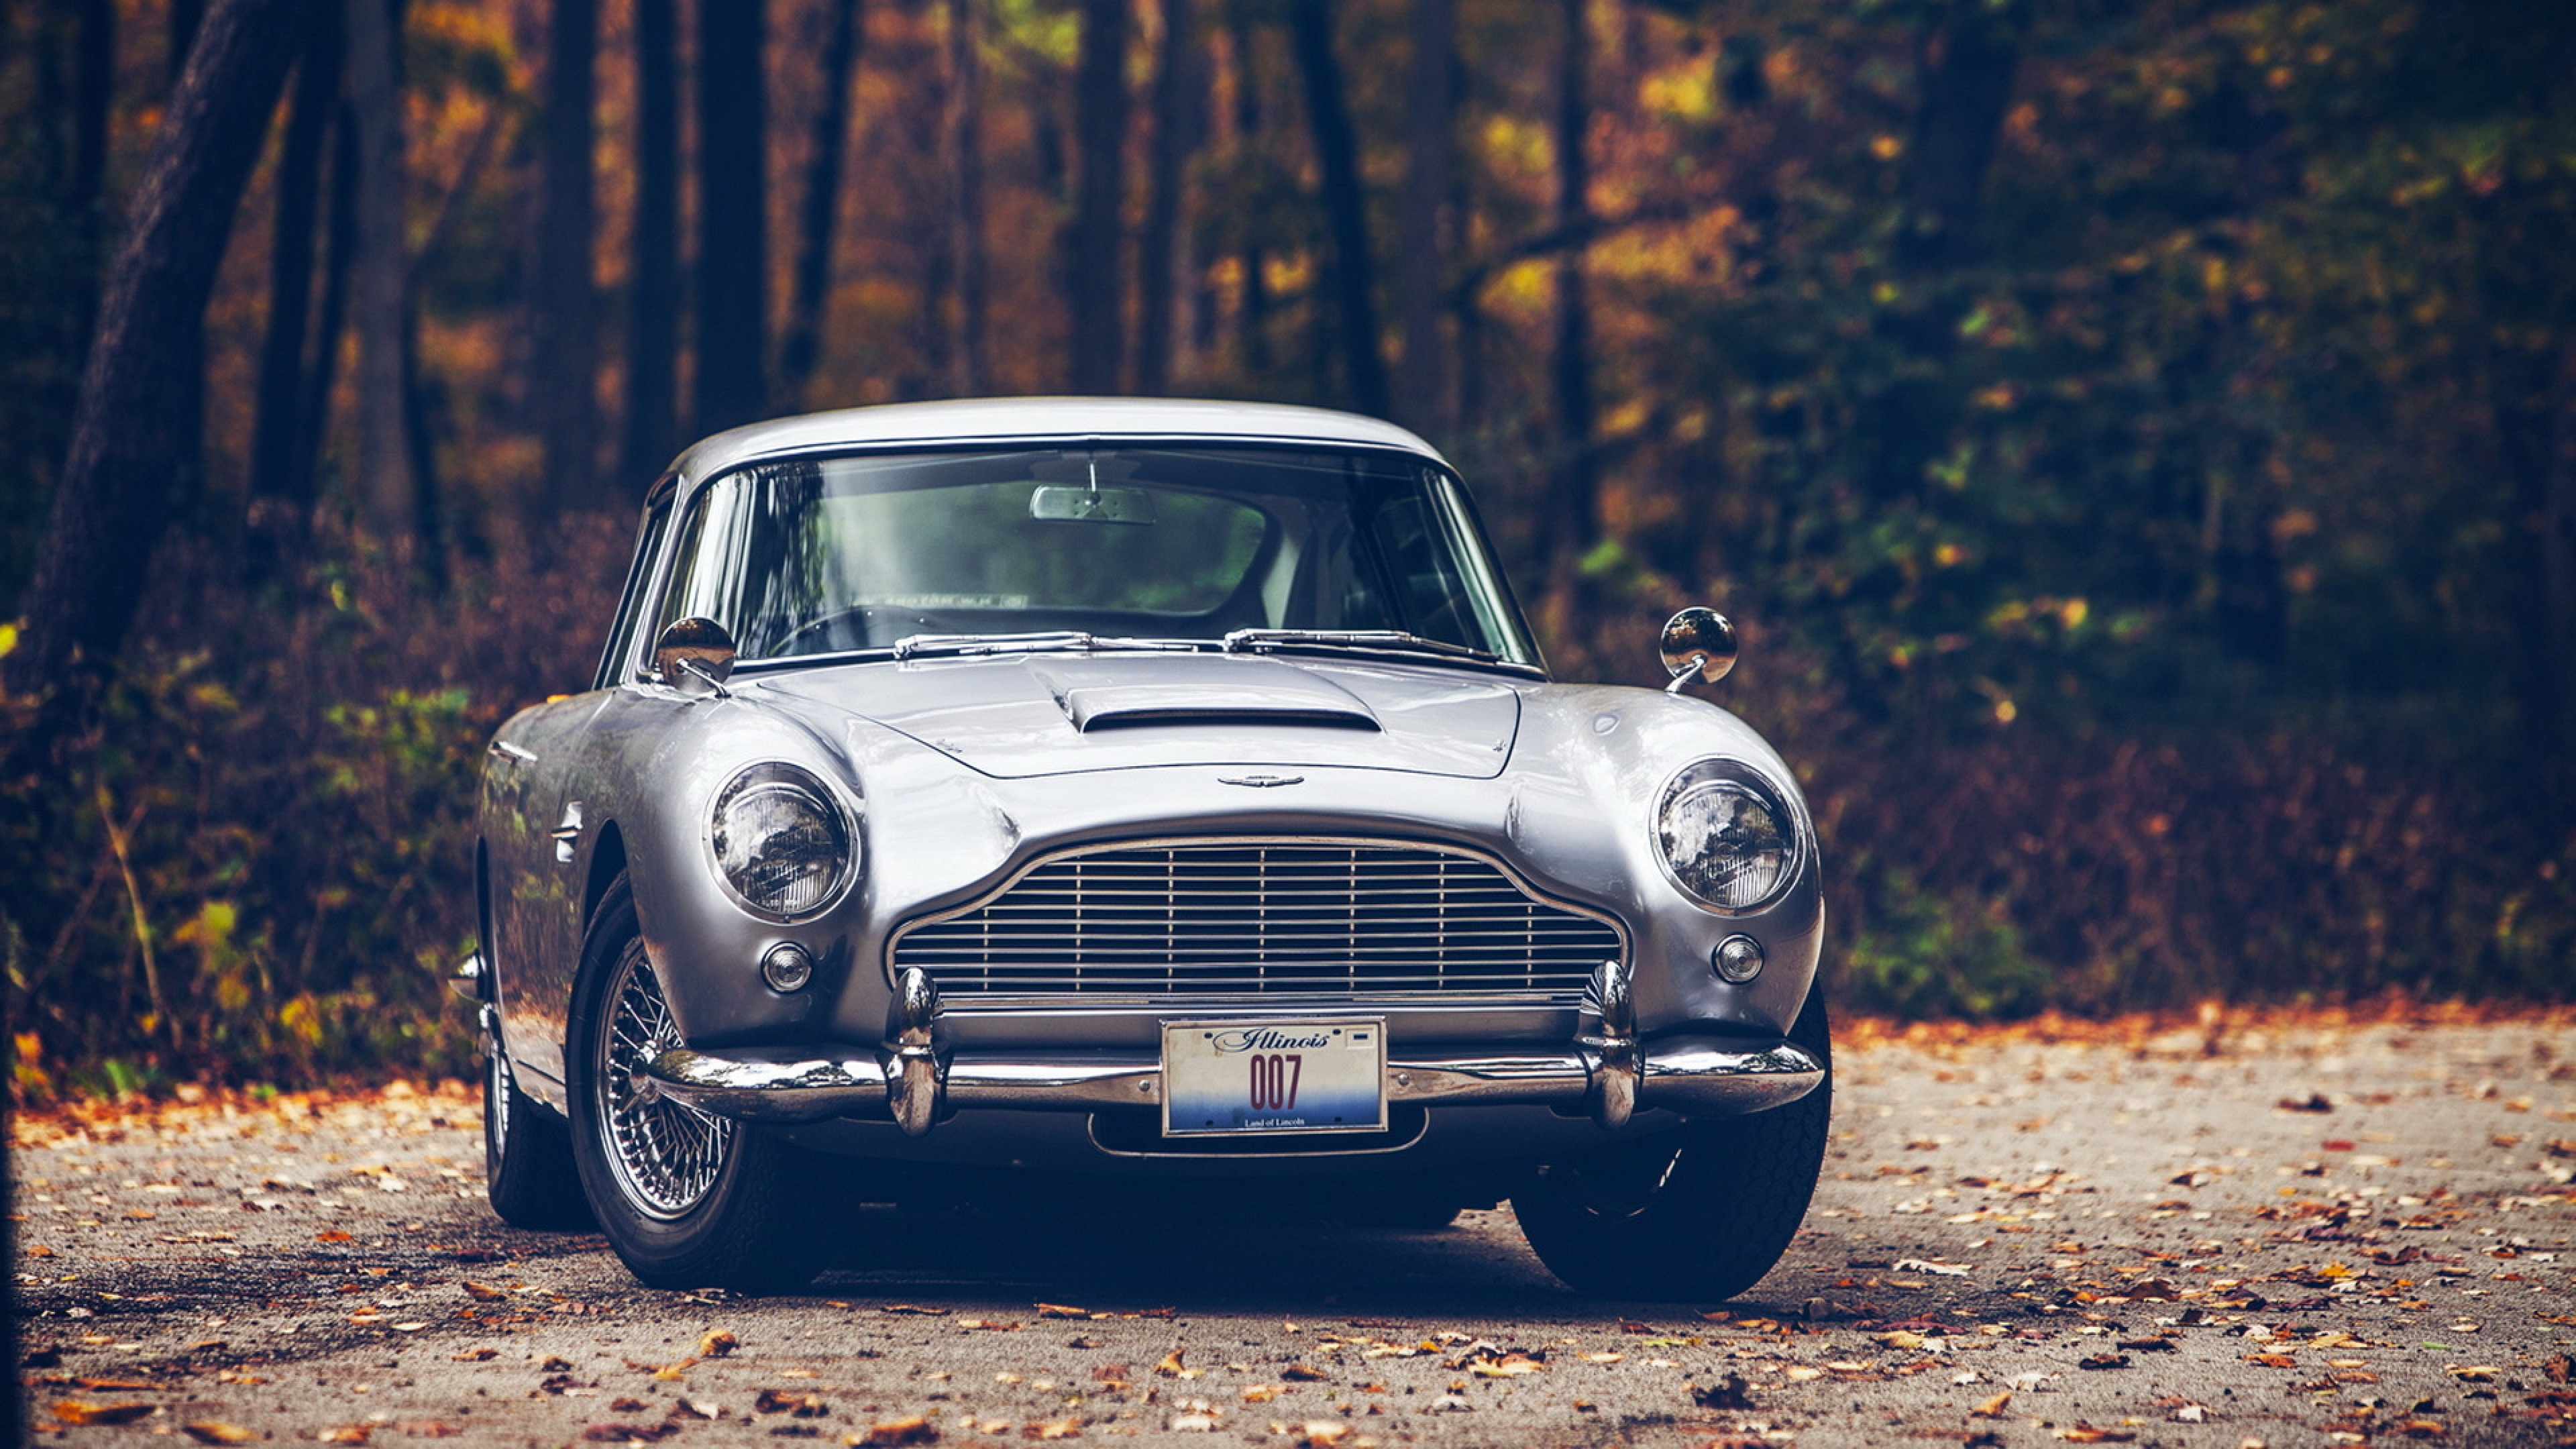 Classic Cars Hd Wallpapers 4k: Aston Martin DB5, HD Cars, 4k Wallpapers, Images